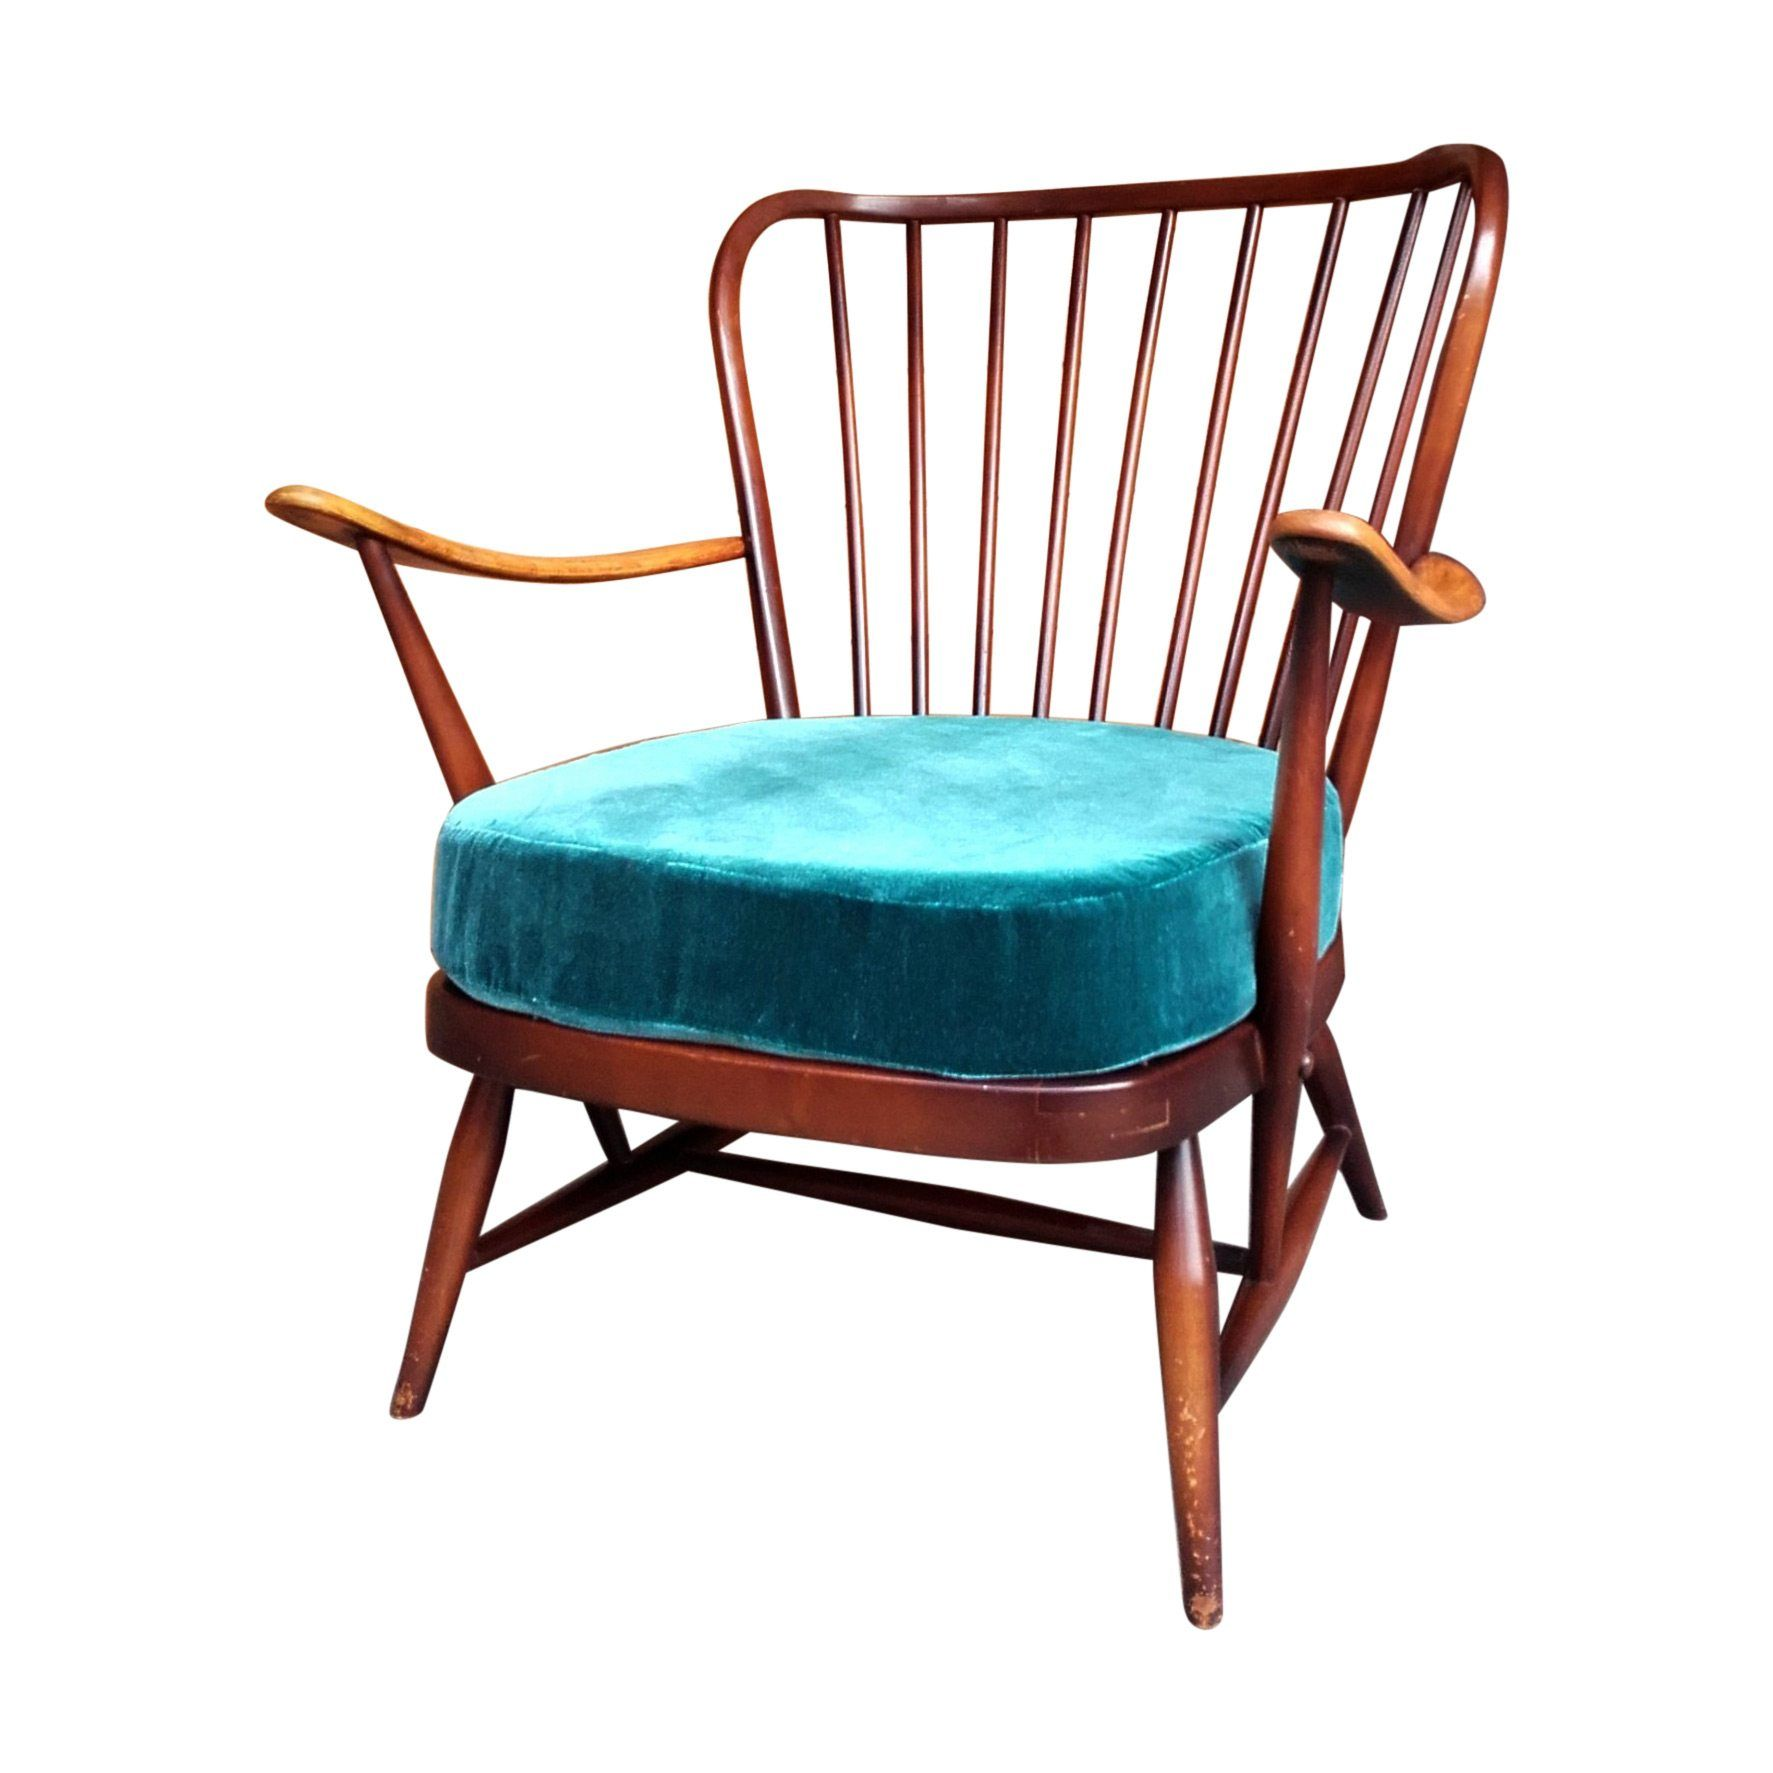 Gorgeously Curvy Ercol Model #477 Easy Chair